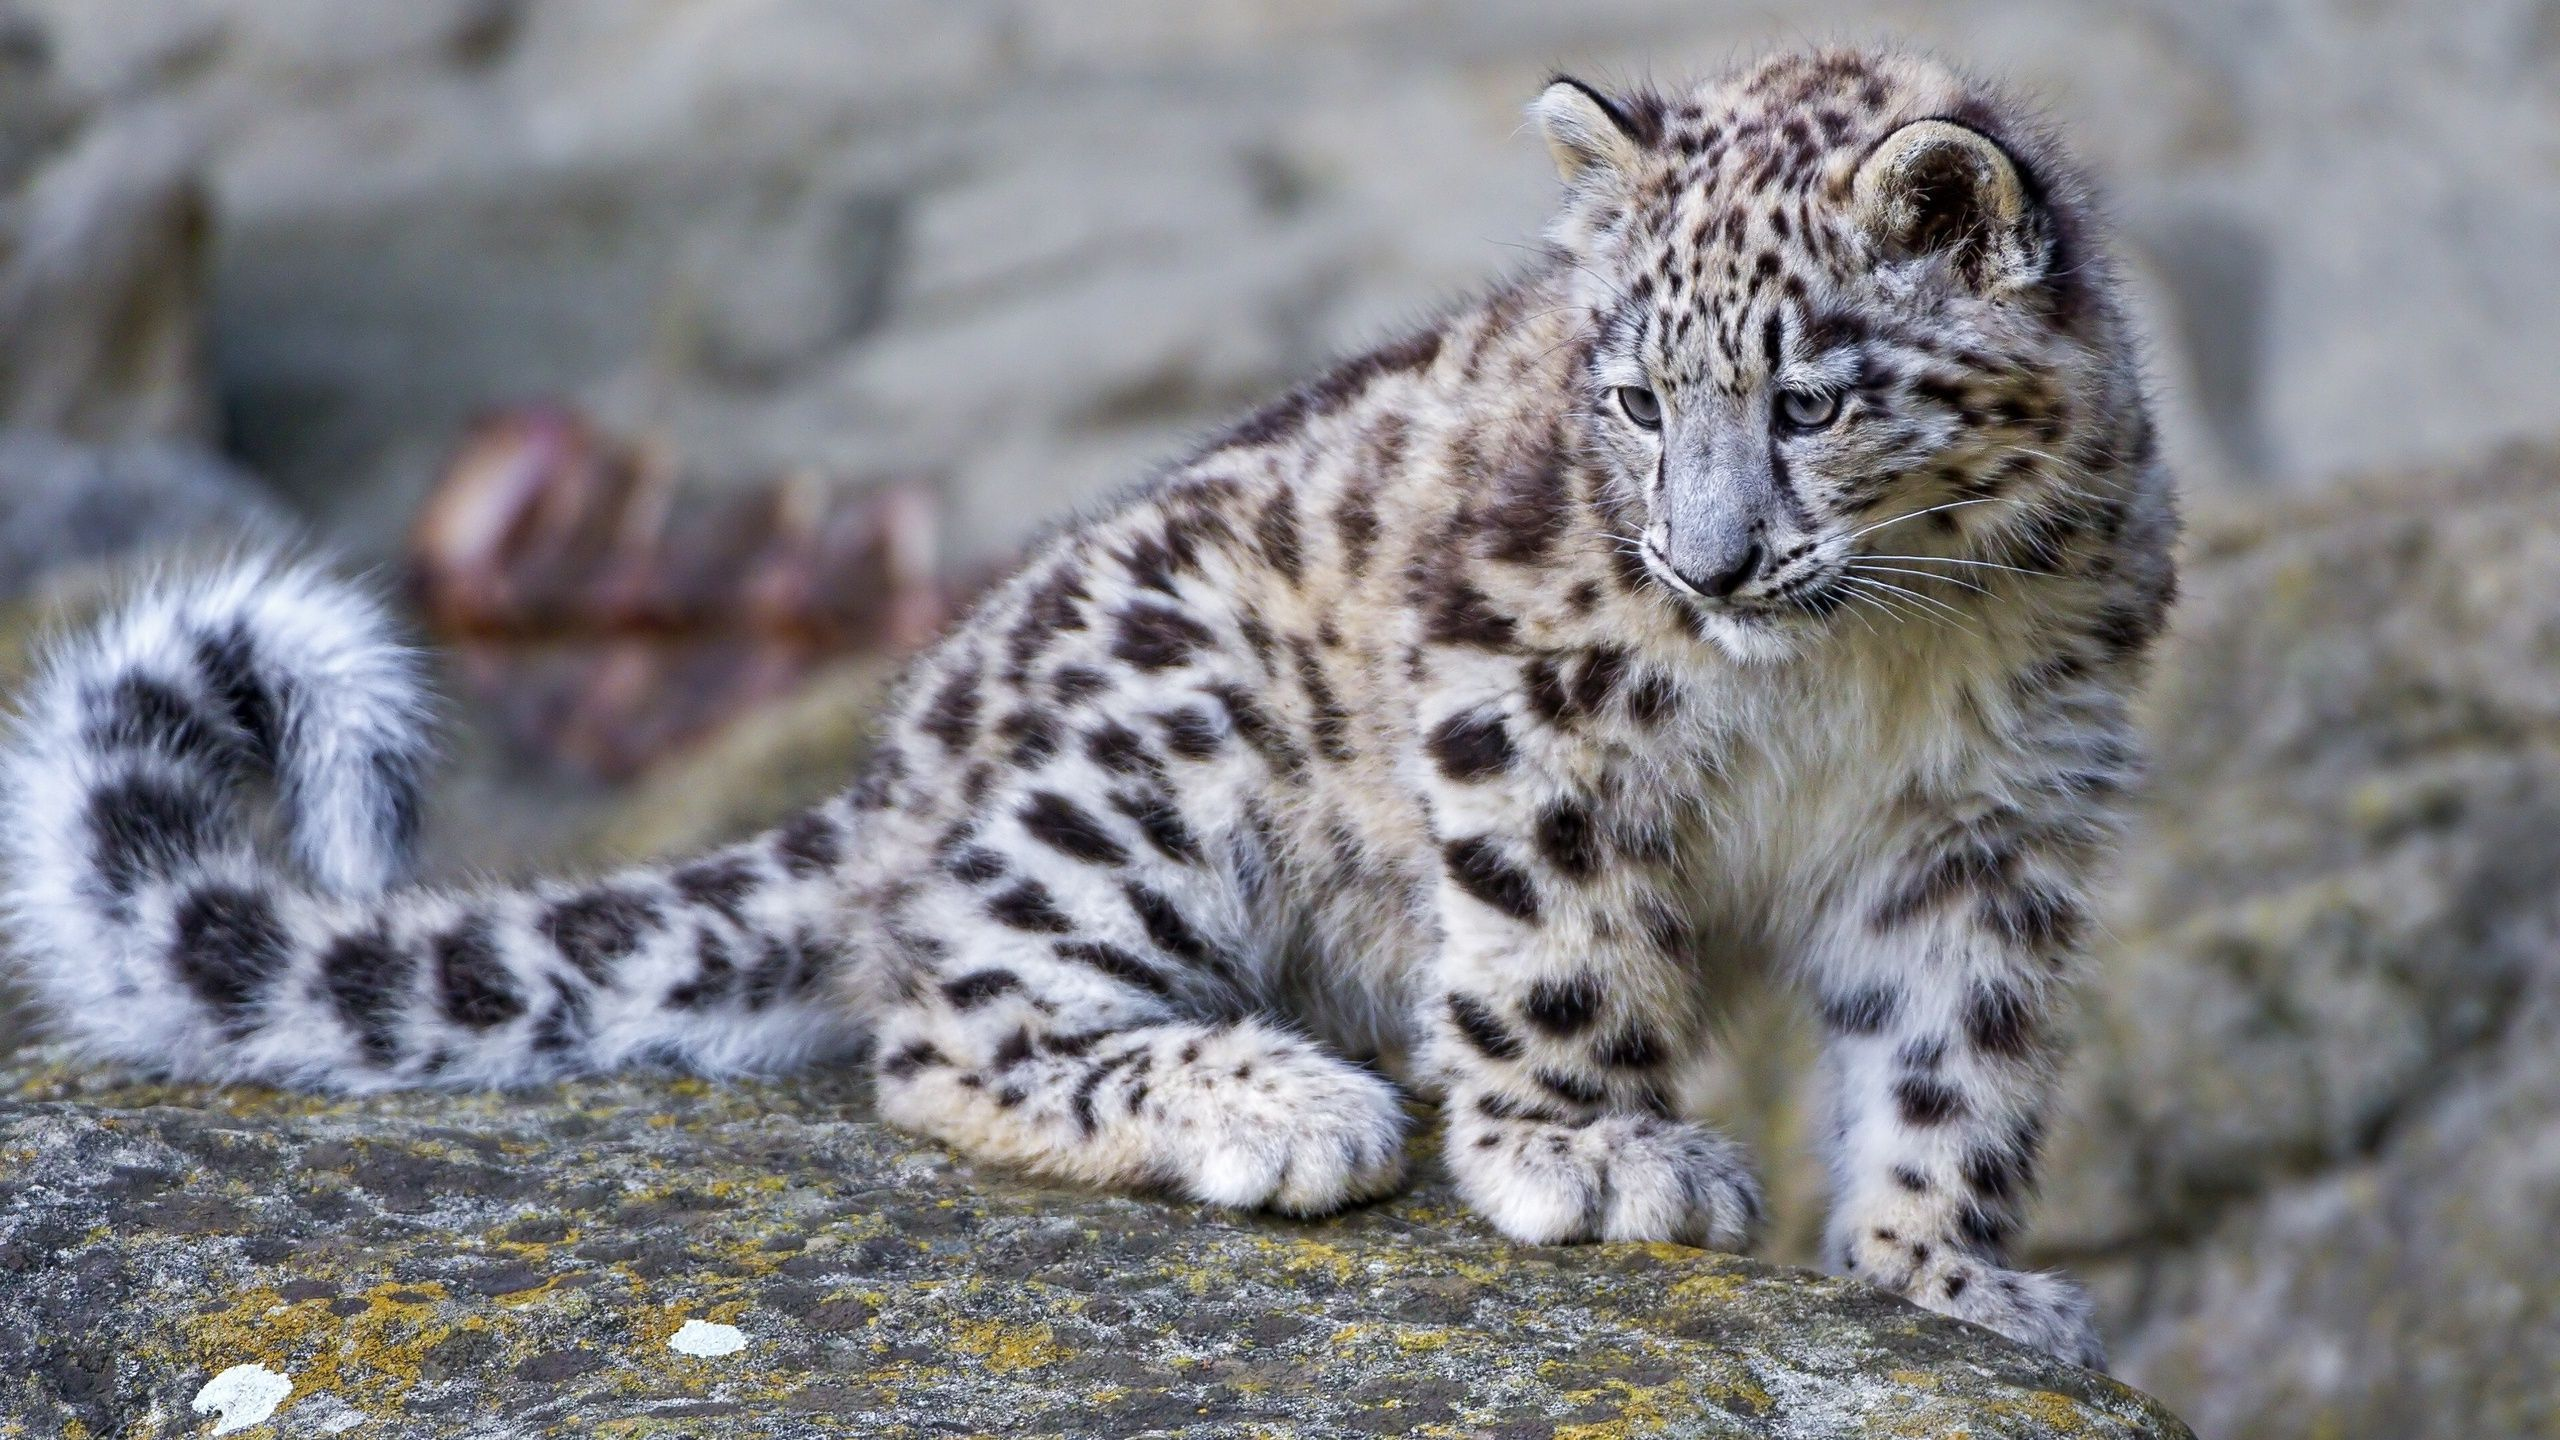 Baby Leopard Wallpapers - Top Free Baby